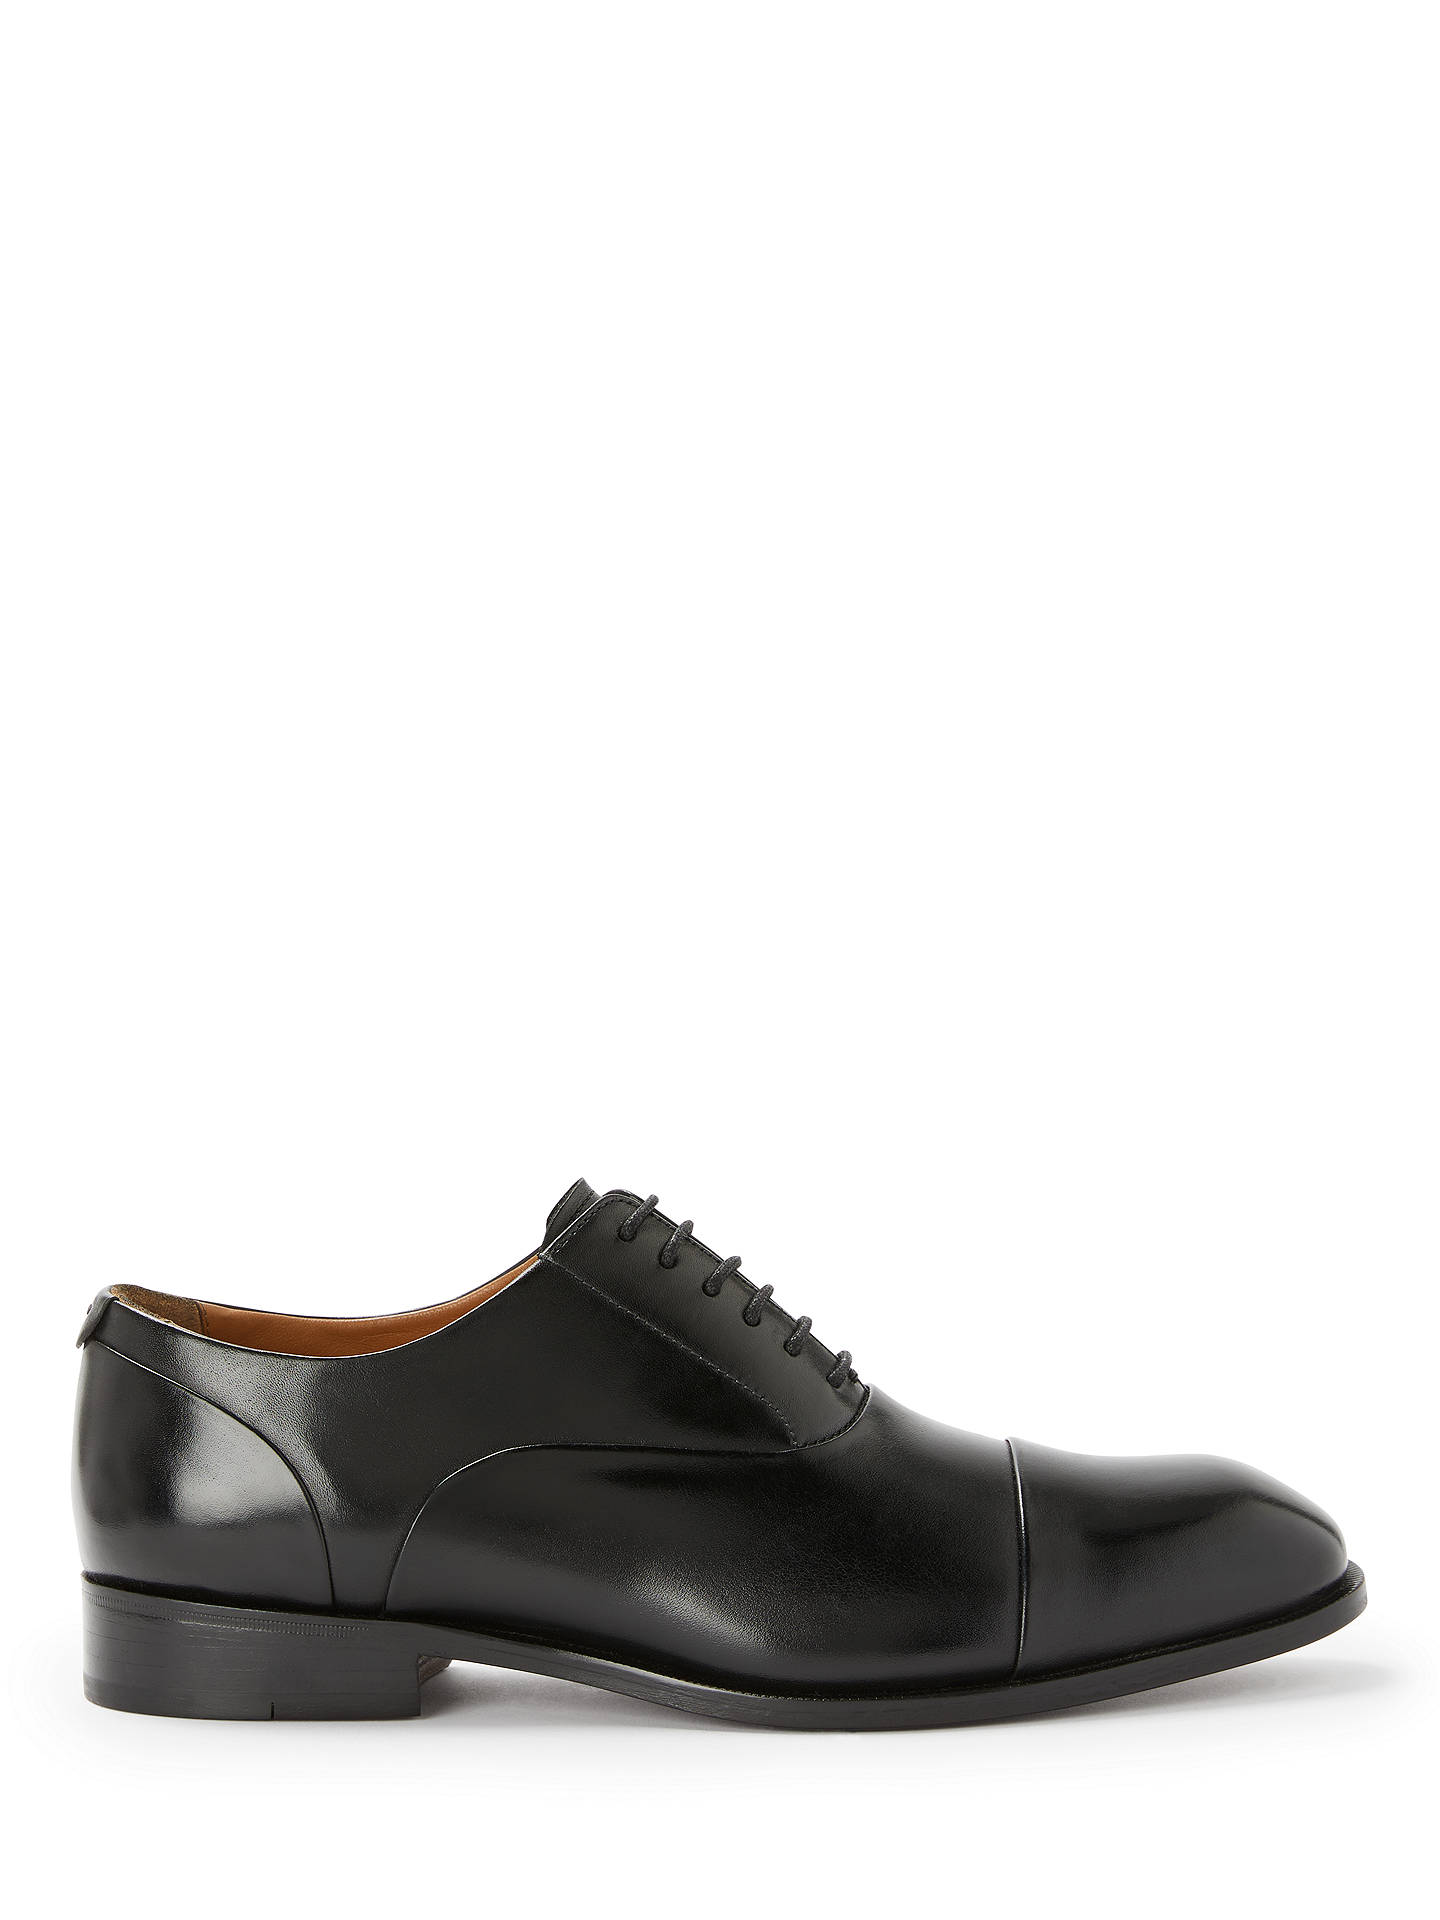 83f1d4a2c6d15 Buy John Lewis & Partners Charles Oxford Shoes, Black, 9 Online at  johnlewis.